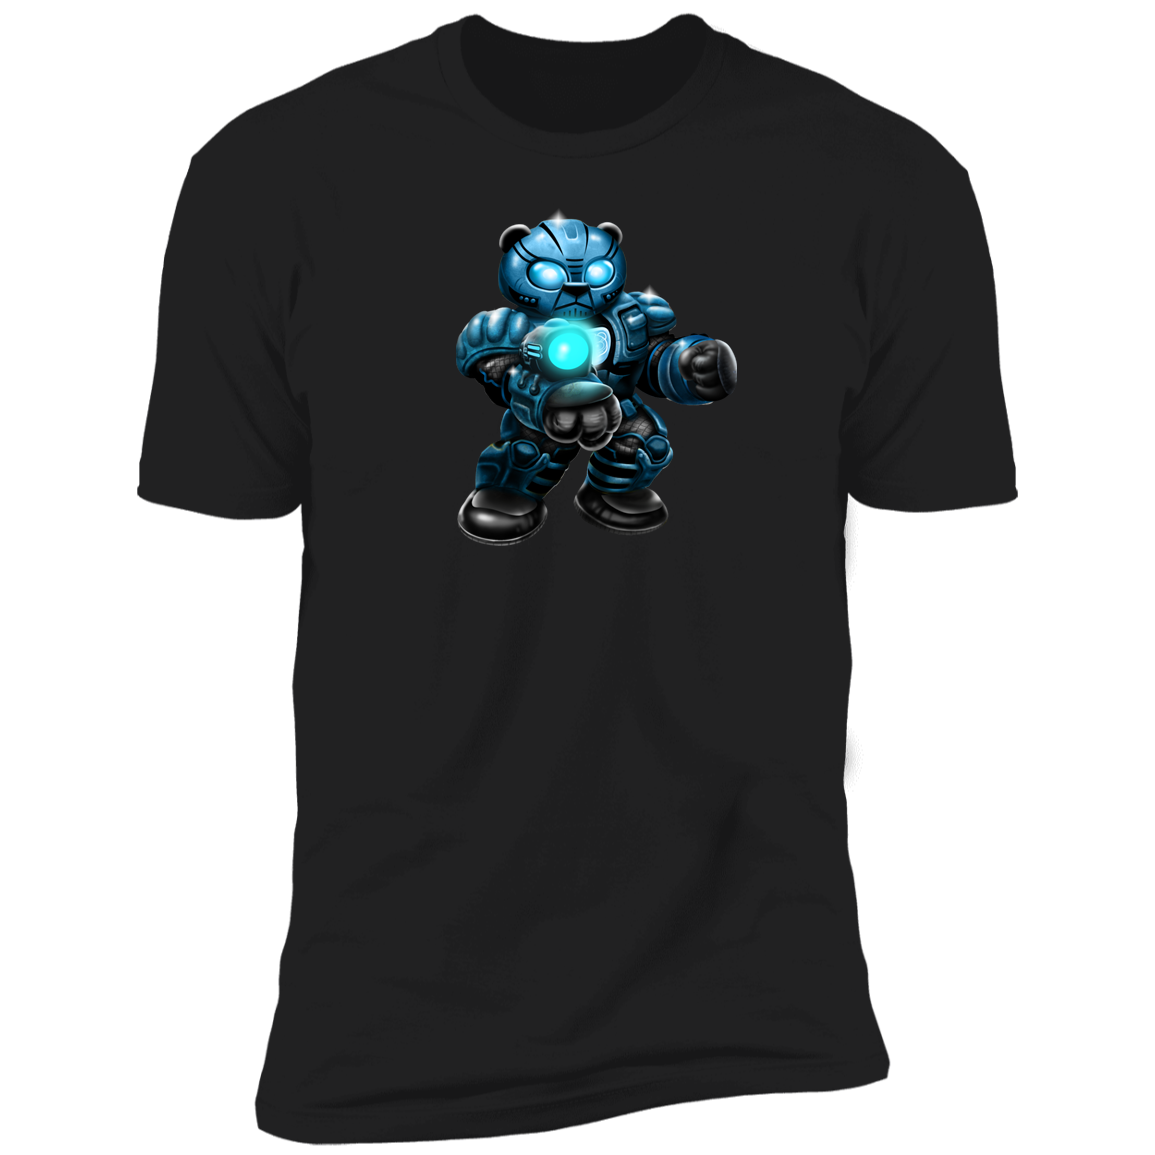 Keylogger T-Shirt For Men - Dark Corps